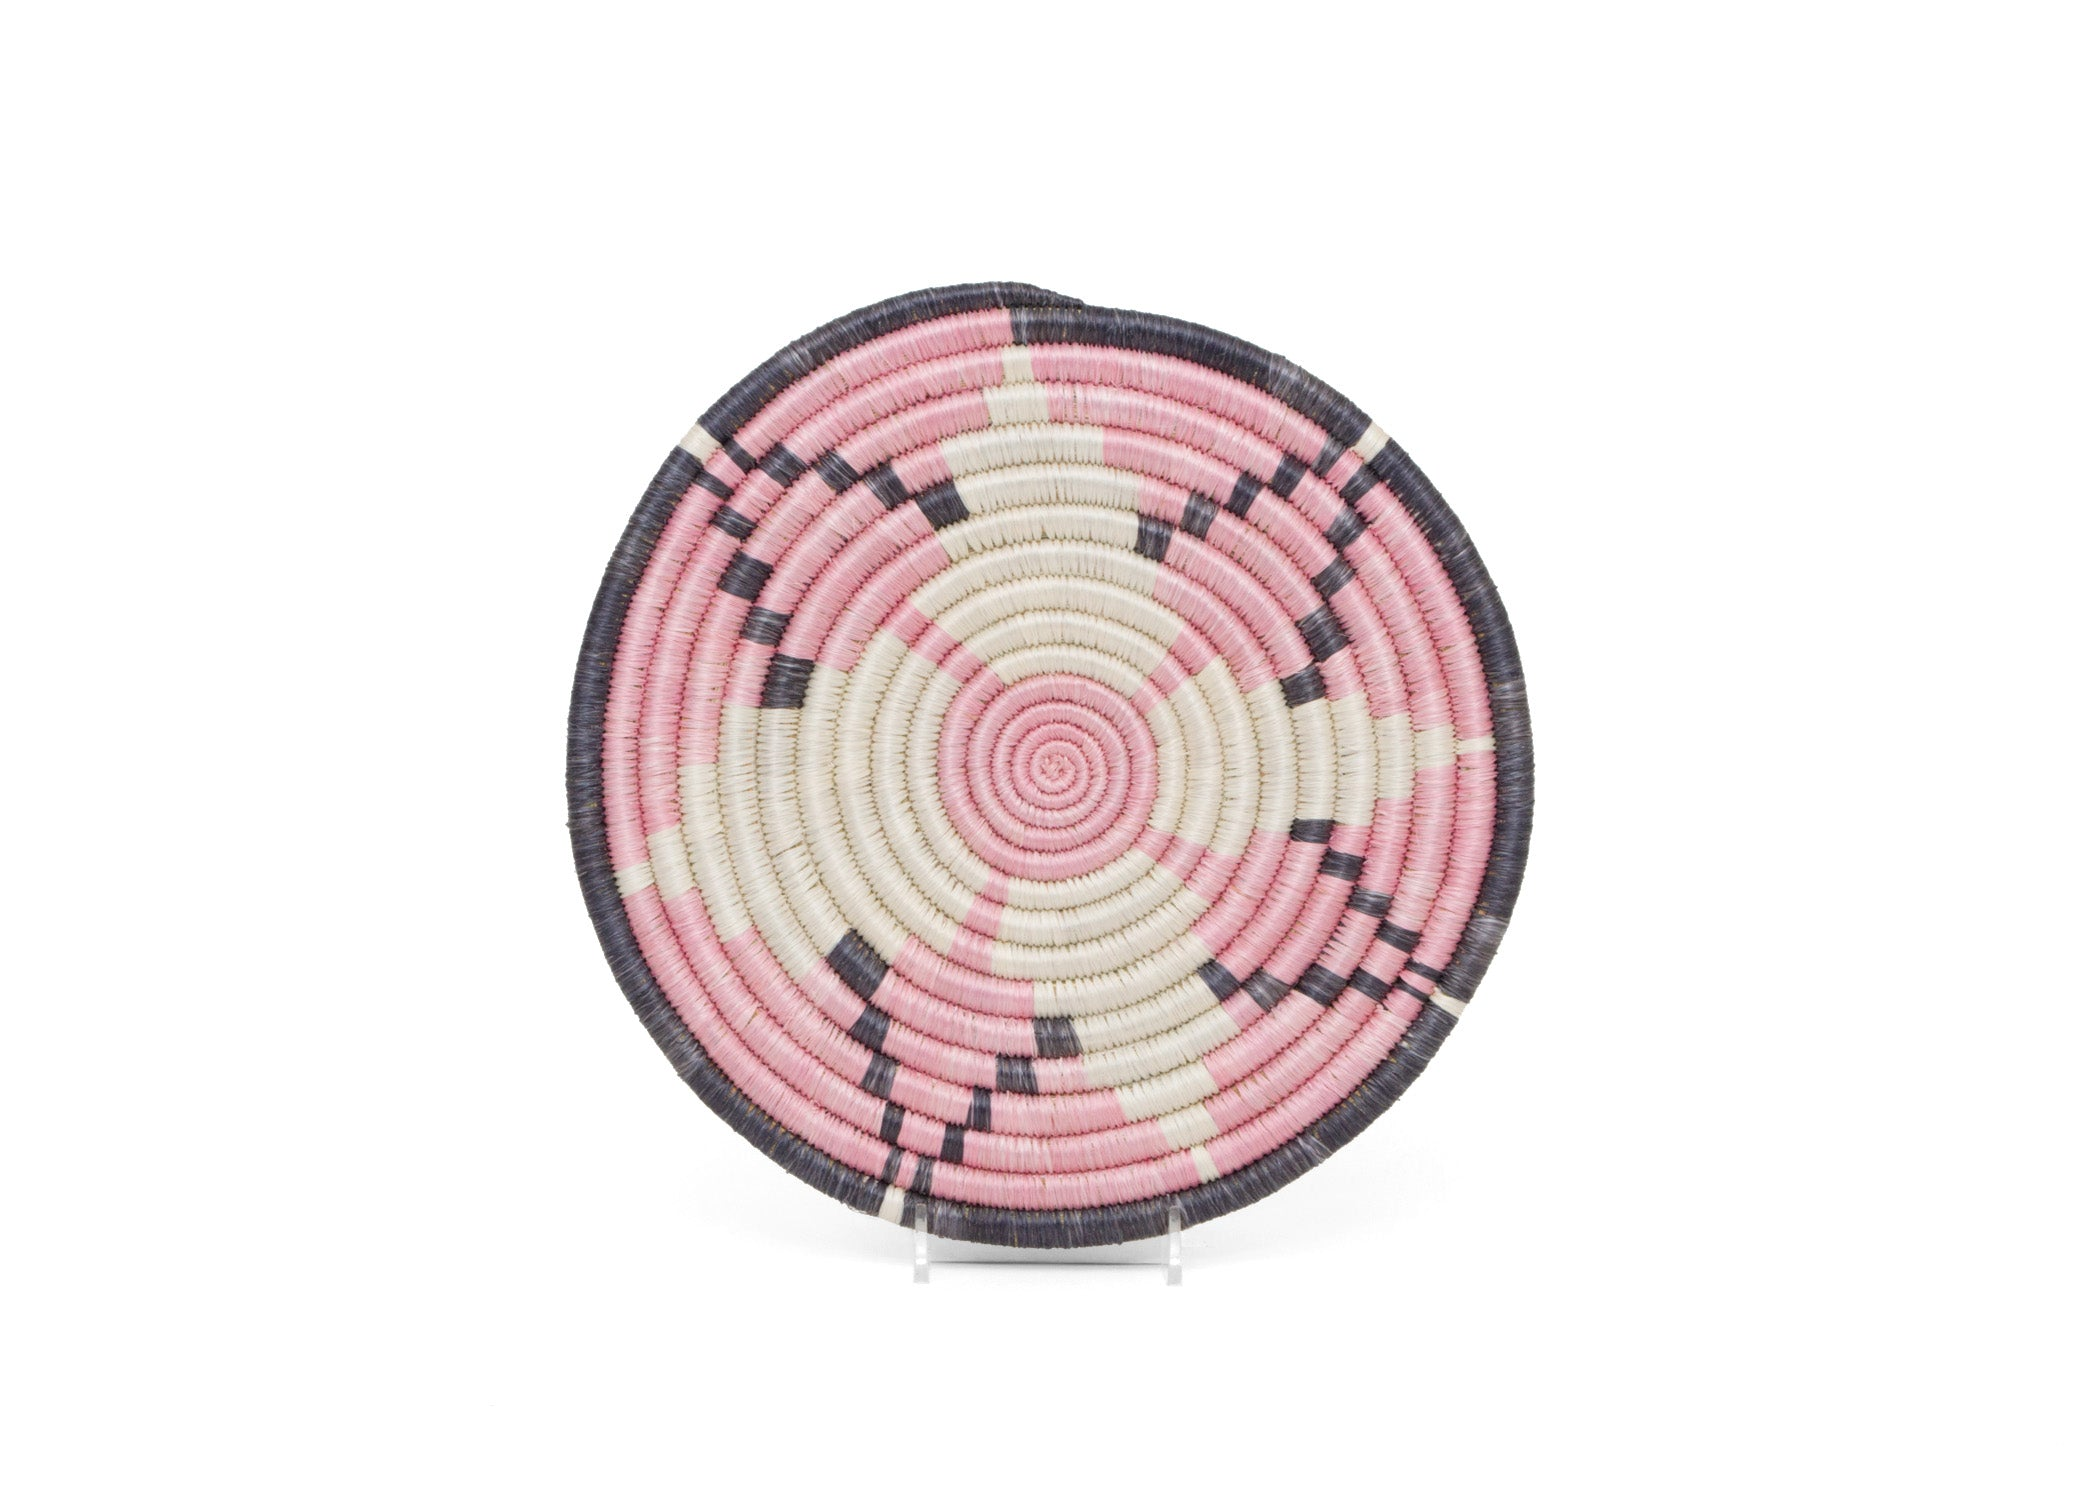 Blush Pink Hope Trivet - KAZI - Artisan made high quality home decor and wall art